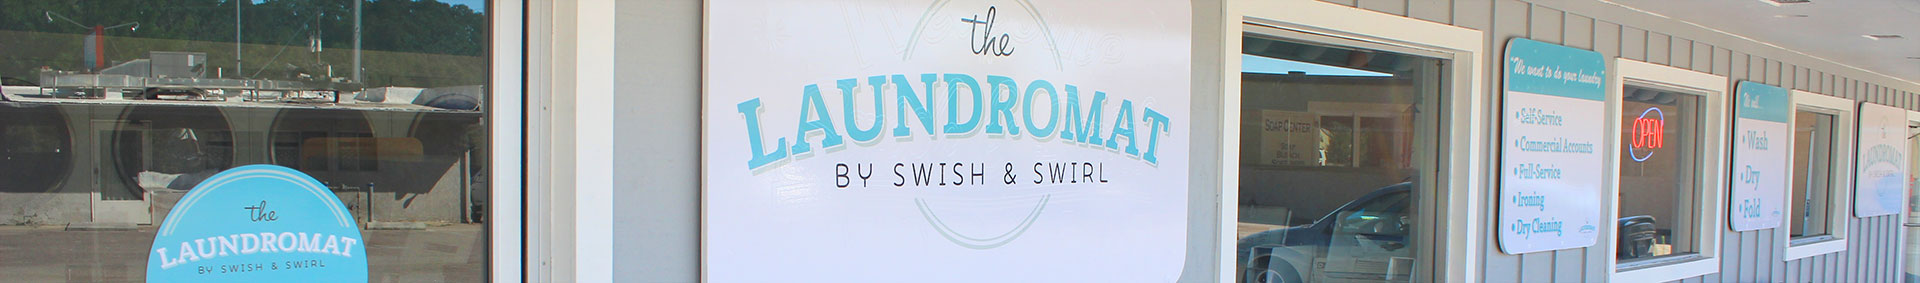 Laundromat Atascadero Laundry Services - Wash and Fold - Business Laundry - Swish and Swirl Laundromat